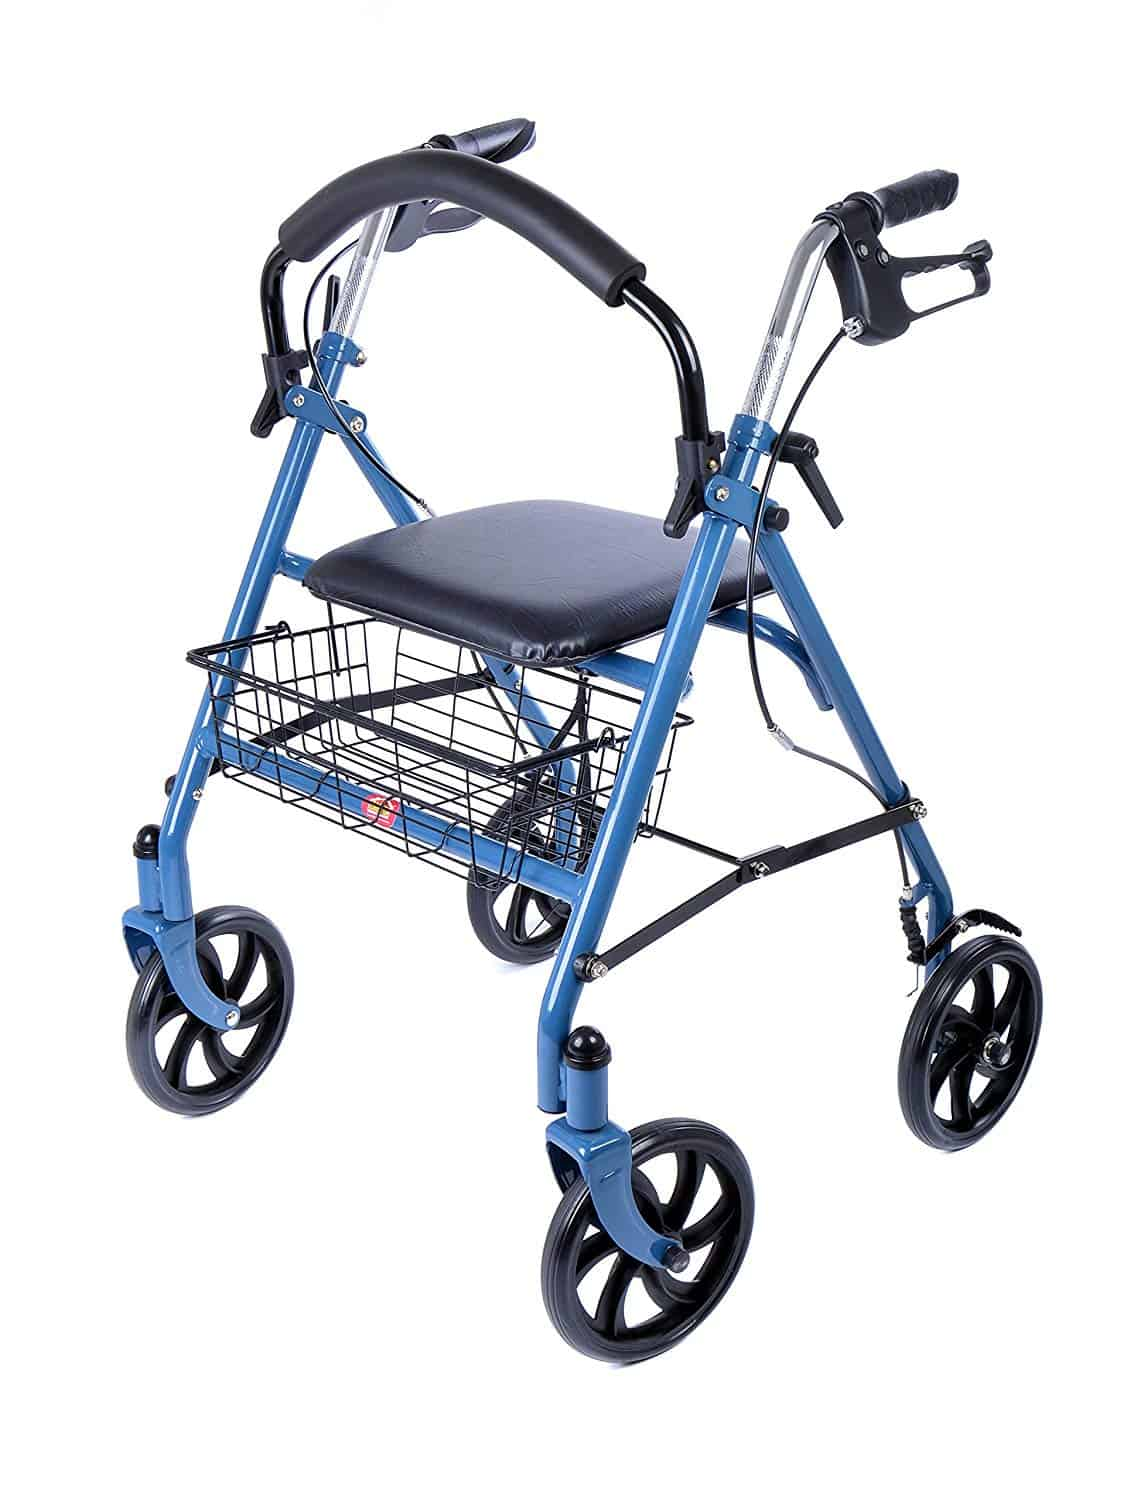 Lightweight 4 Wheel Rollator with Padded Seat and Basket